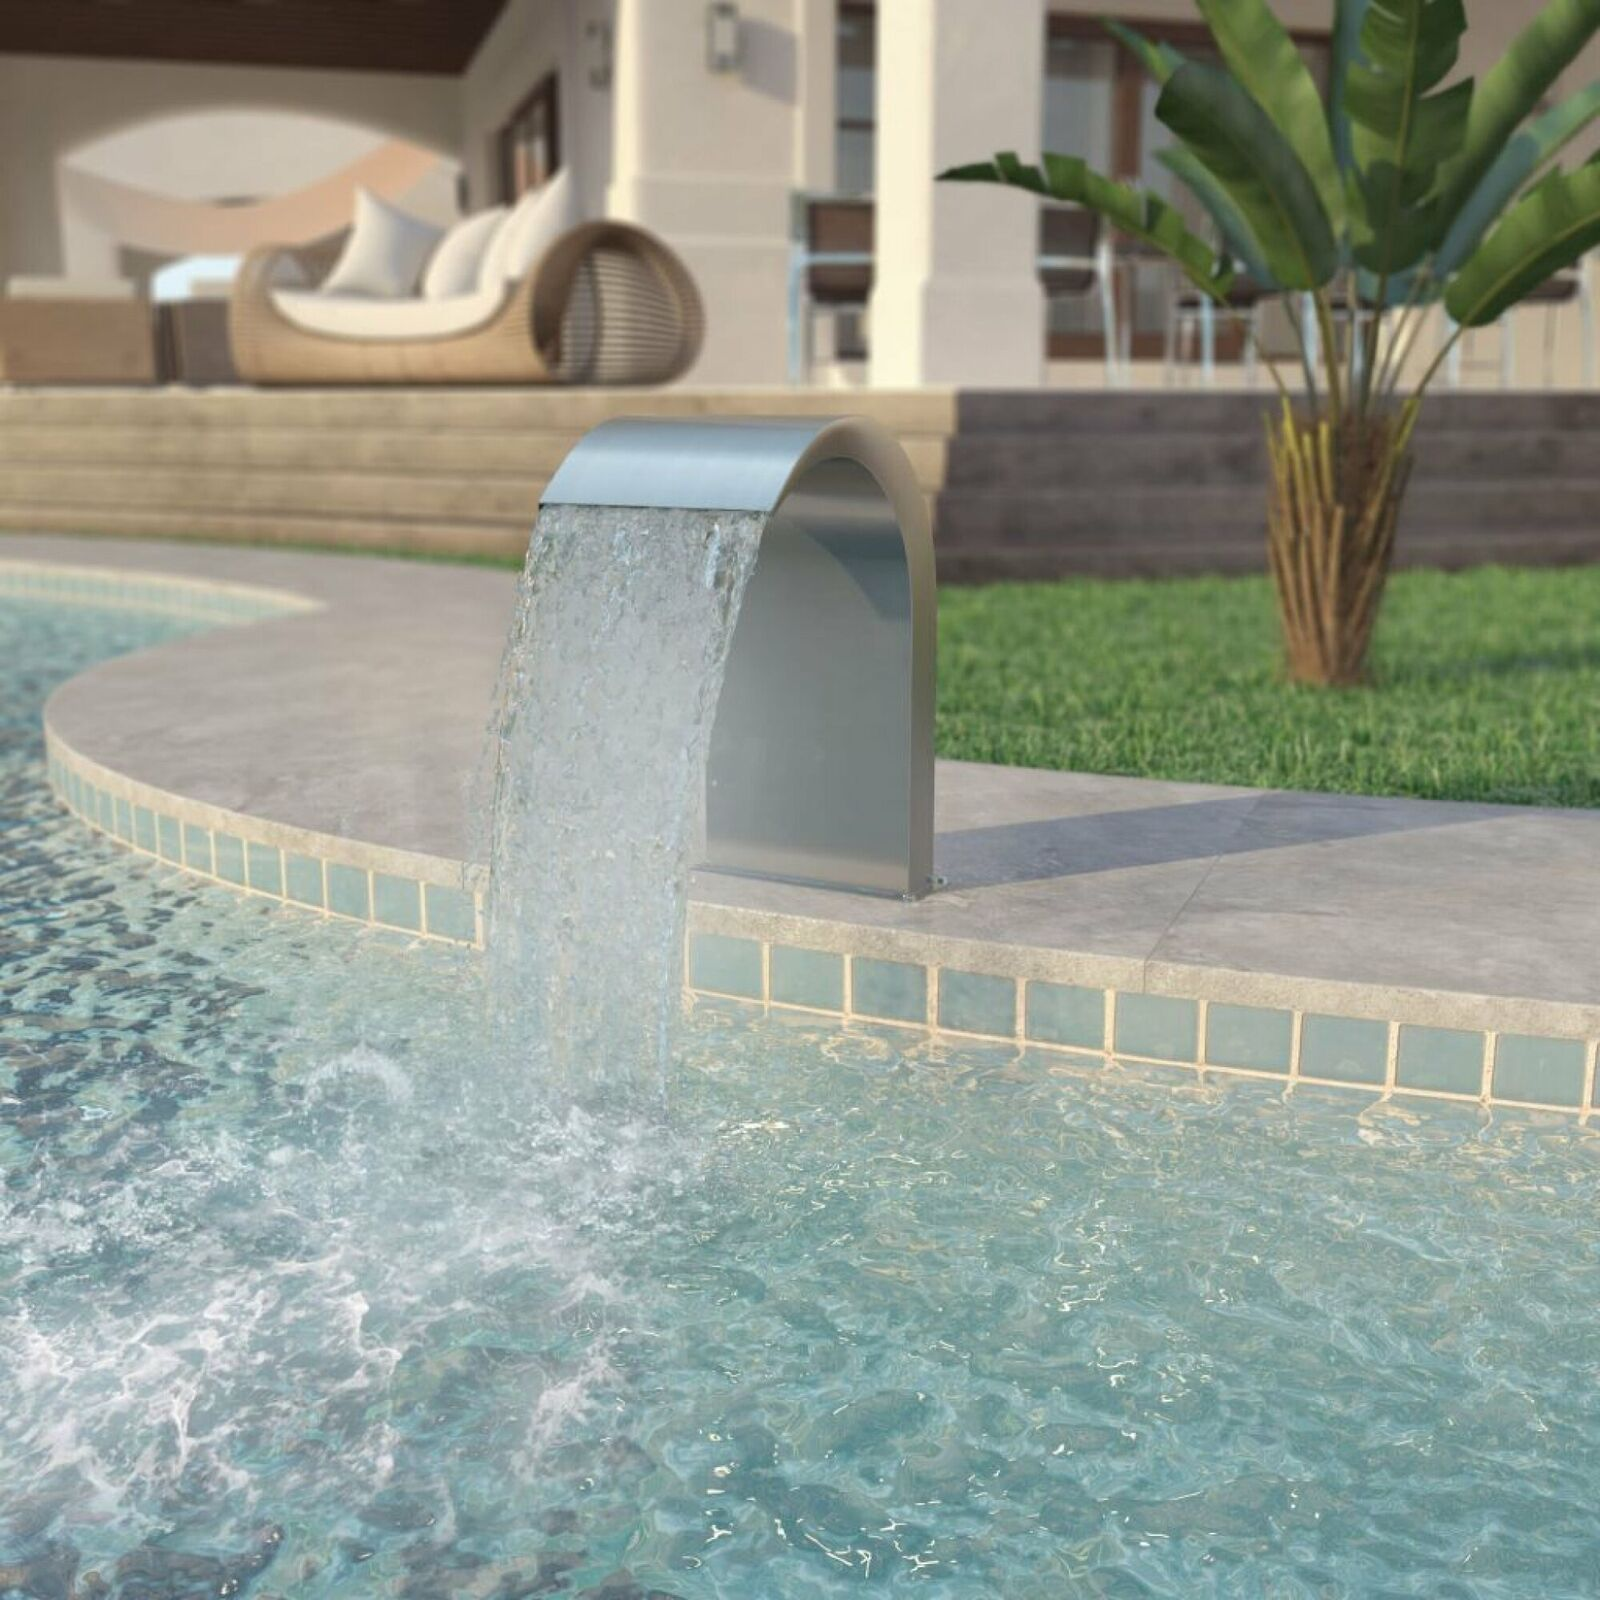 Cascade Stainless Steel Waterfall - Spillway Weir LED - Swimming Pool Spa Pond